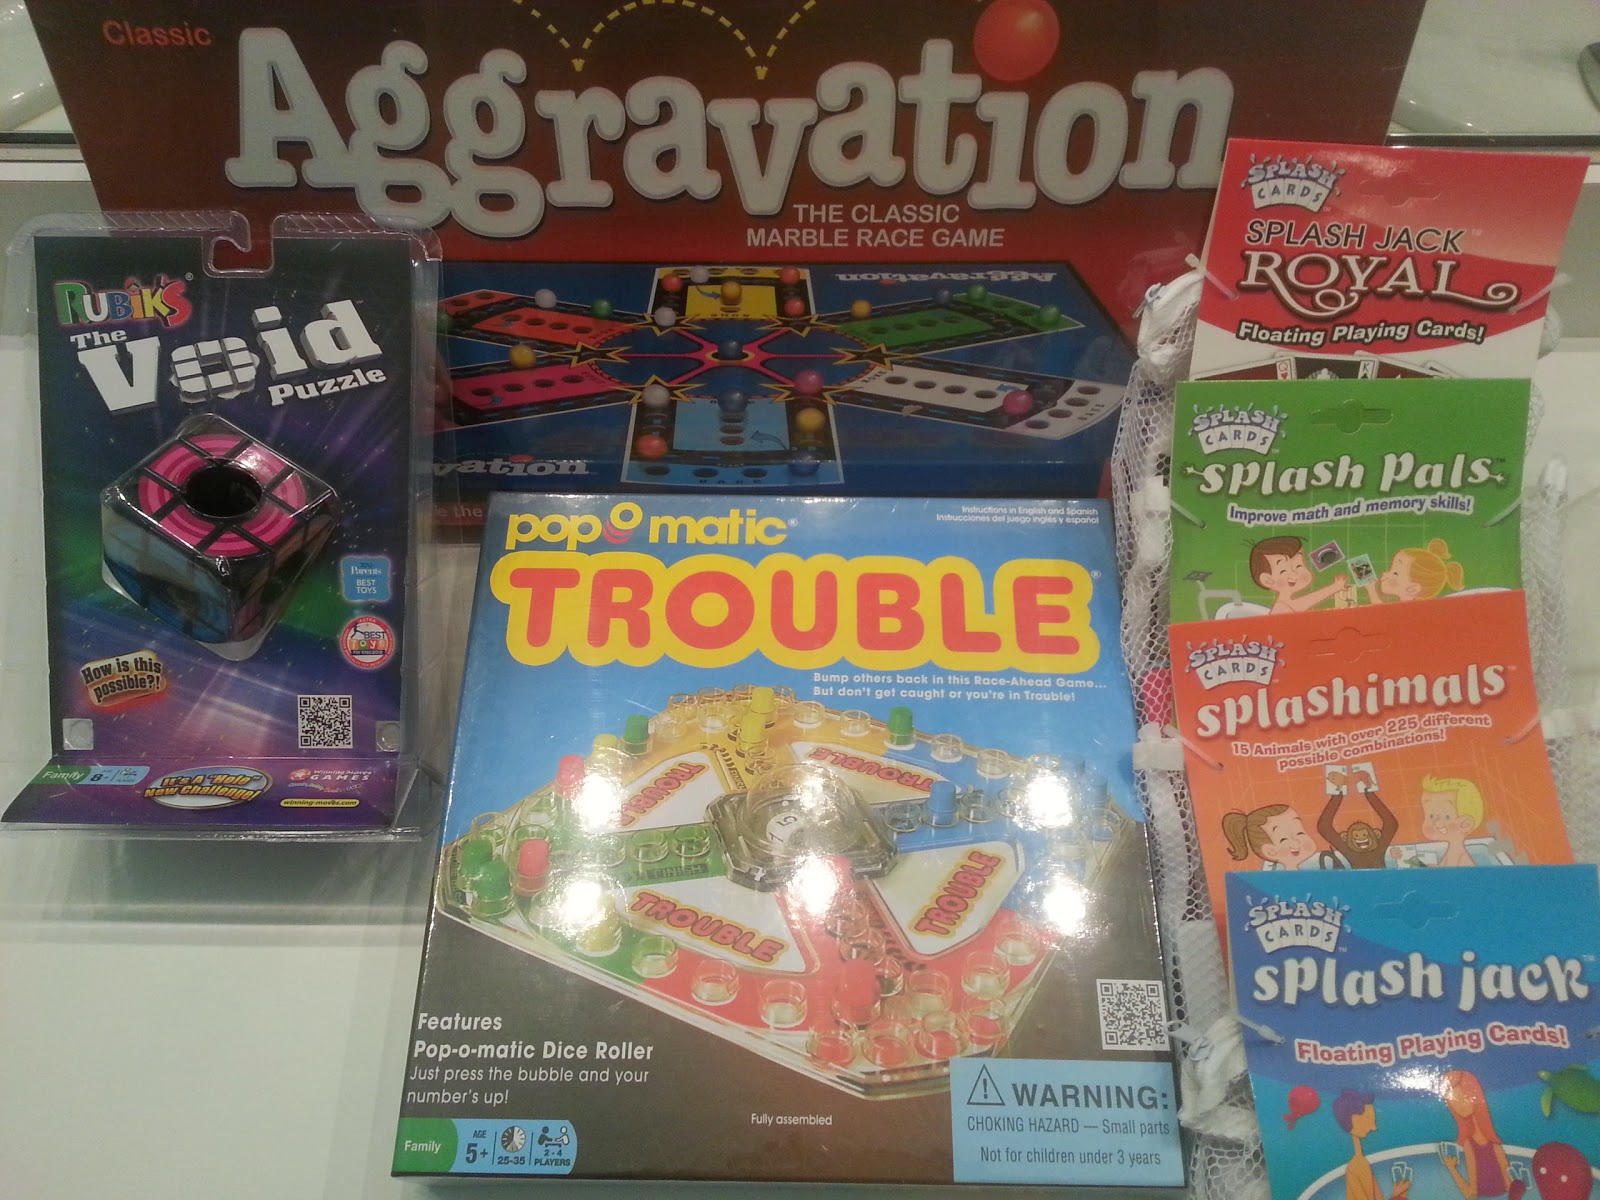 Enter the Winning Moves Games Review and Giveaway. Ends 6/2.